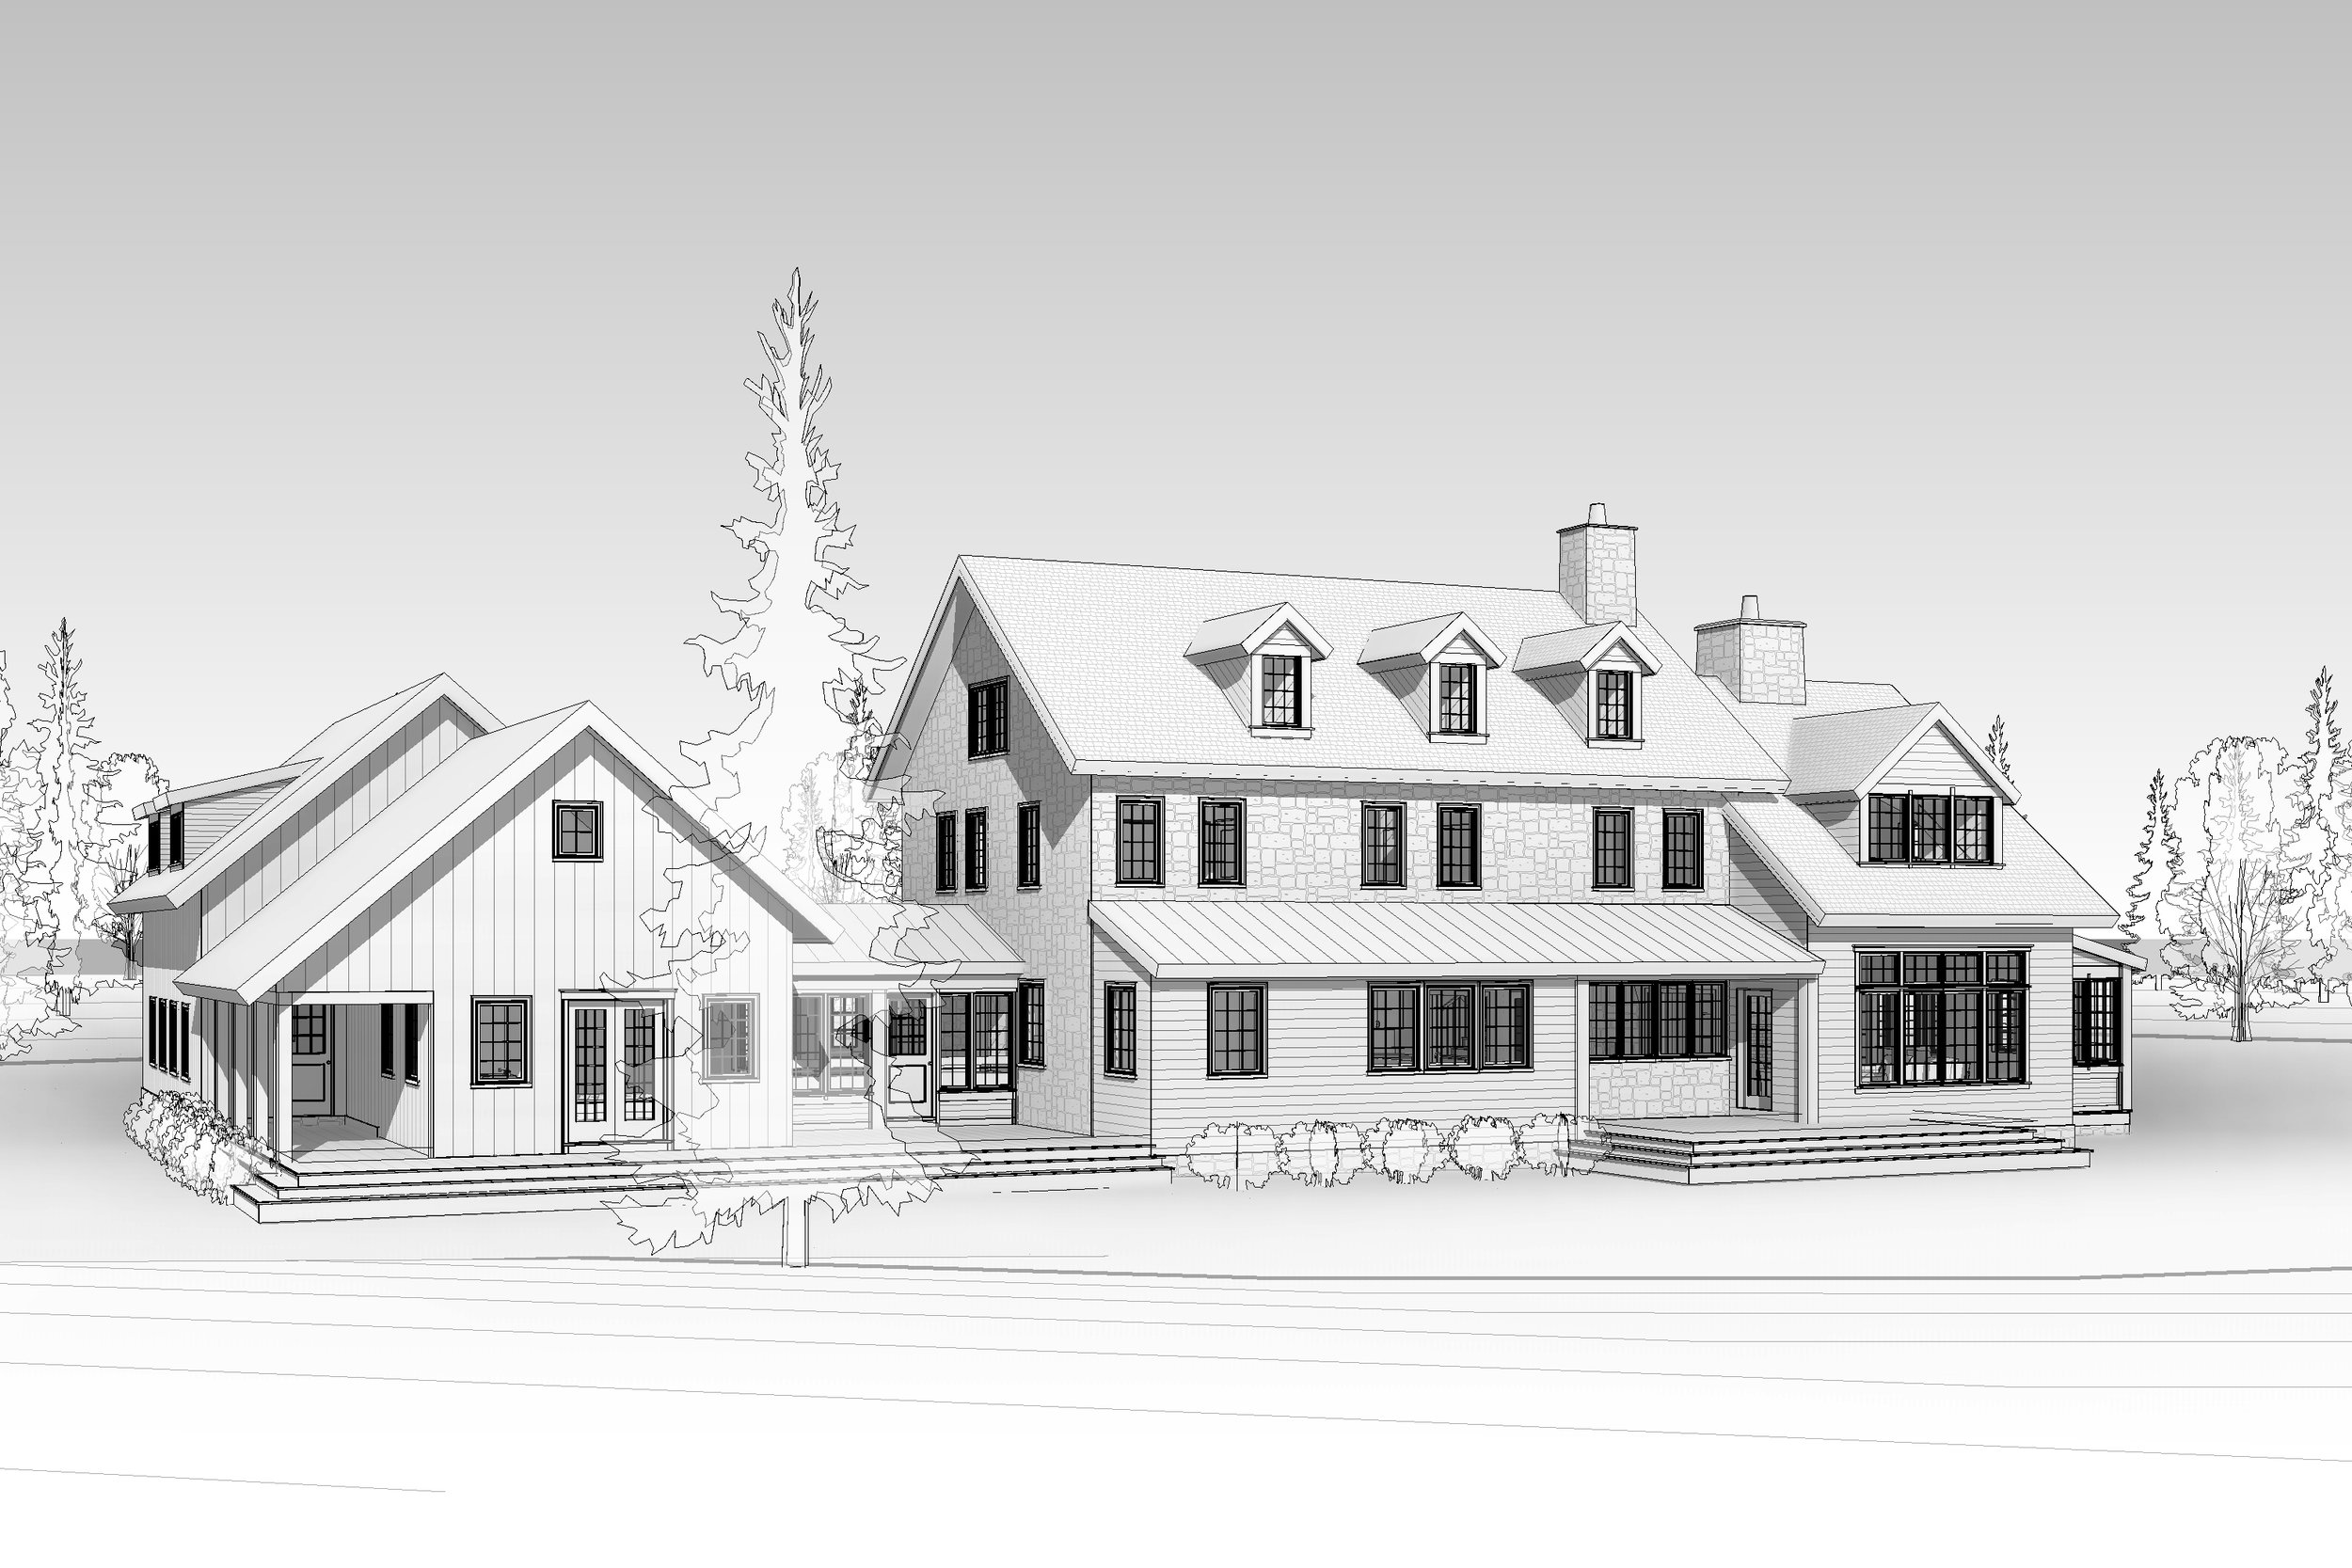 Inlet Farmhouse rear 3D.jpg